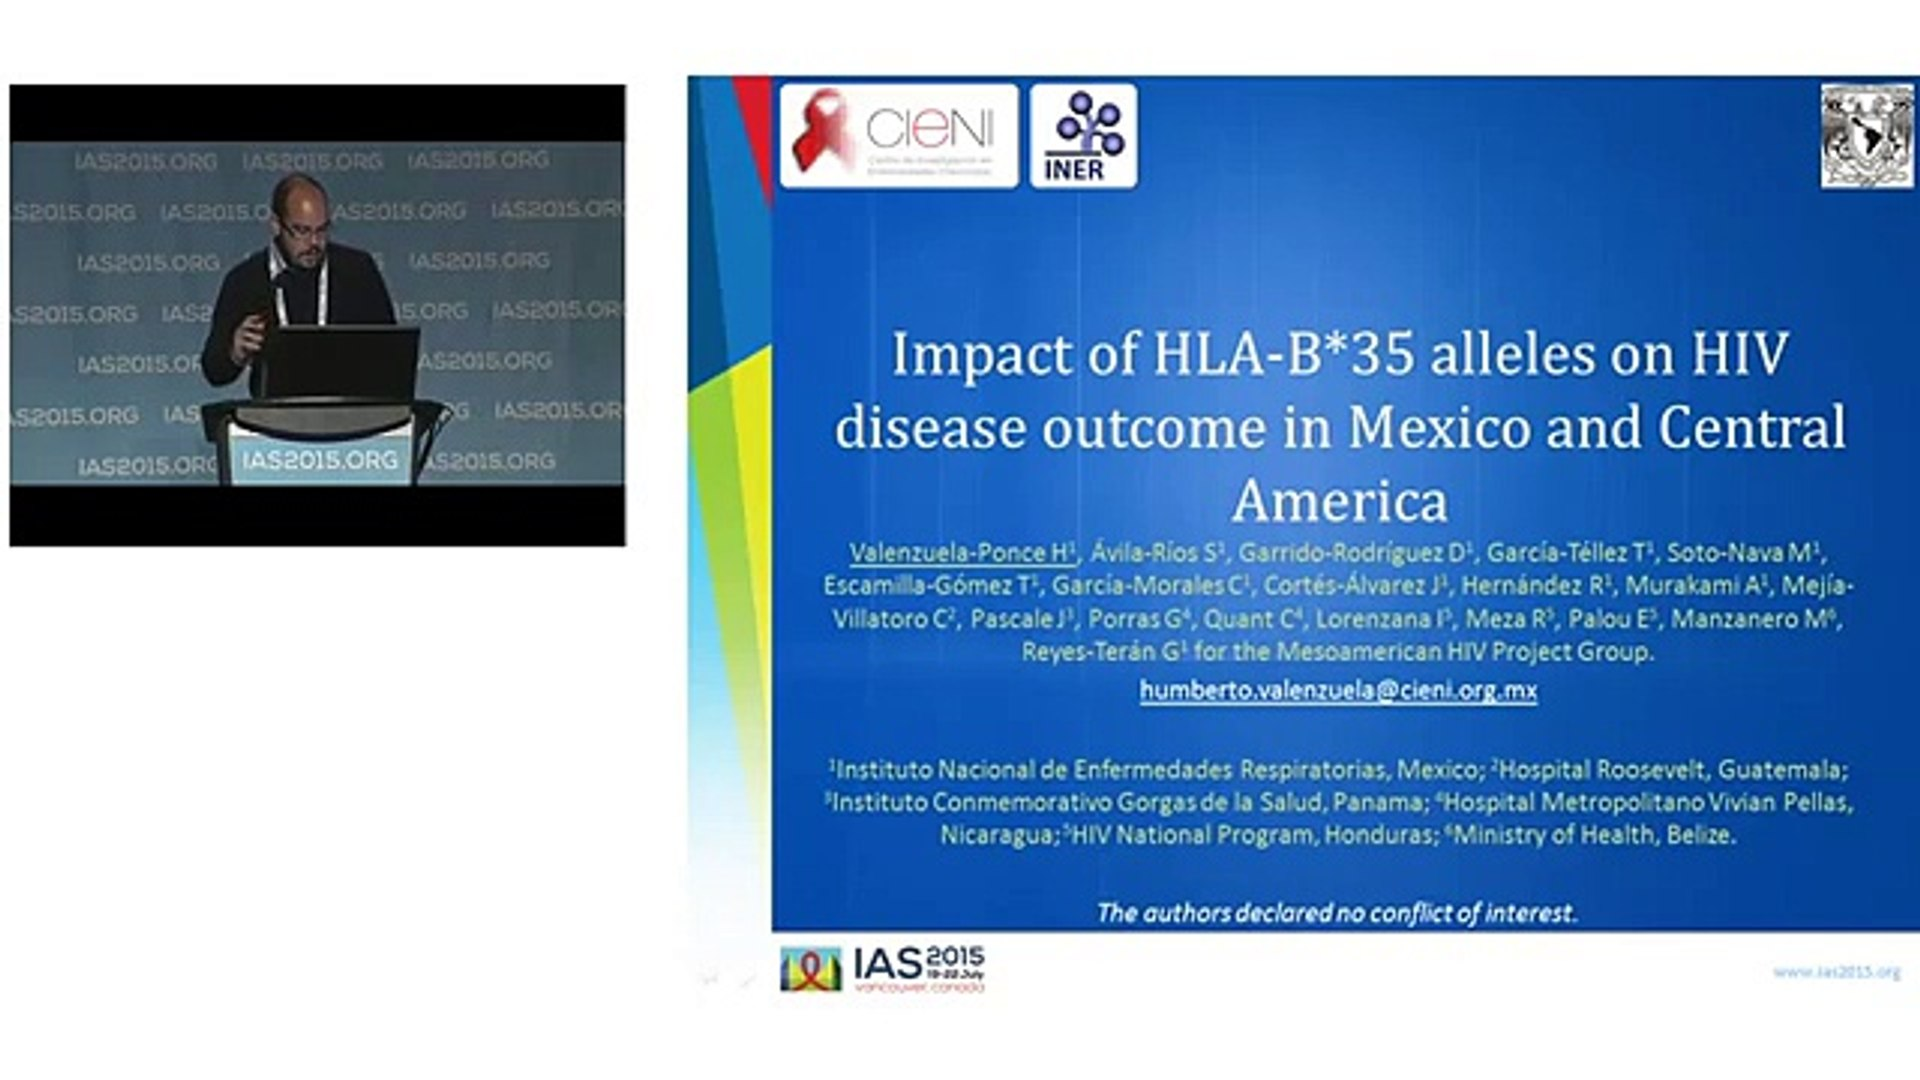 WEAA0103 - Impact of HLA-B*35 alleles on HIV disease outcome in Mexico and Central America